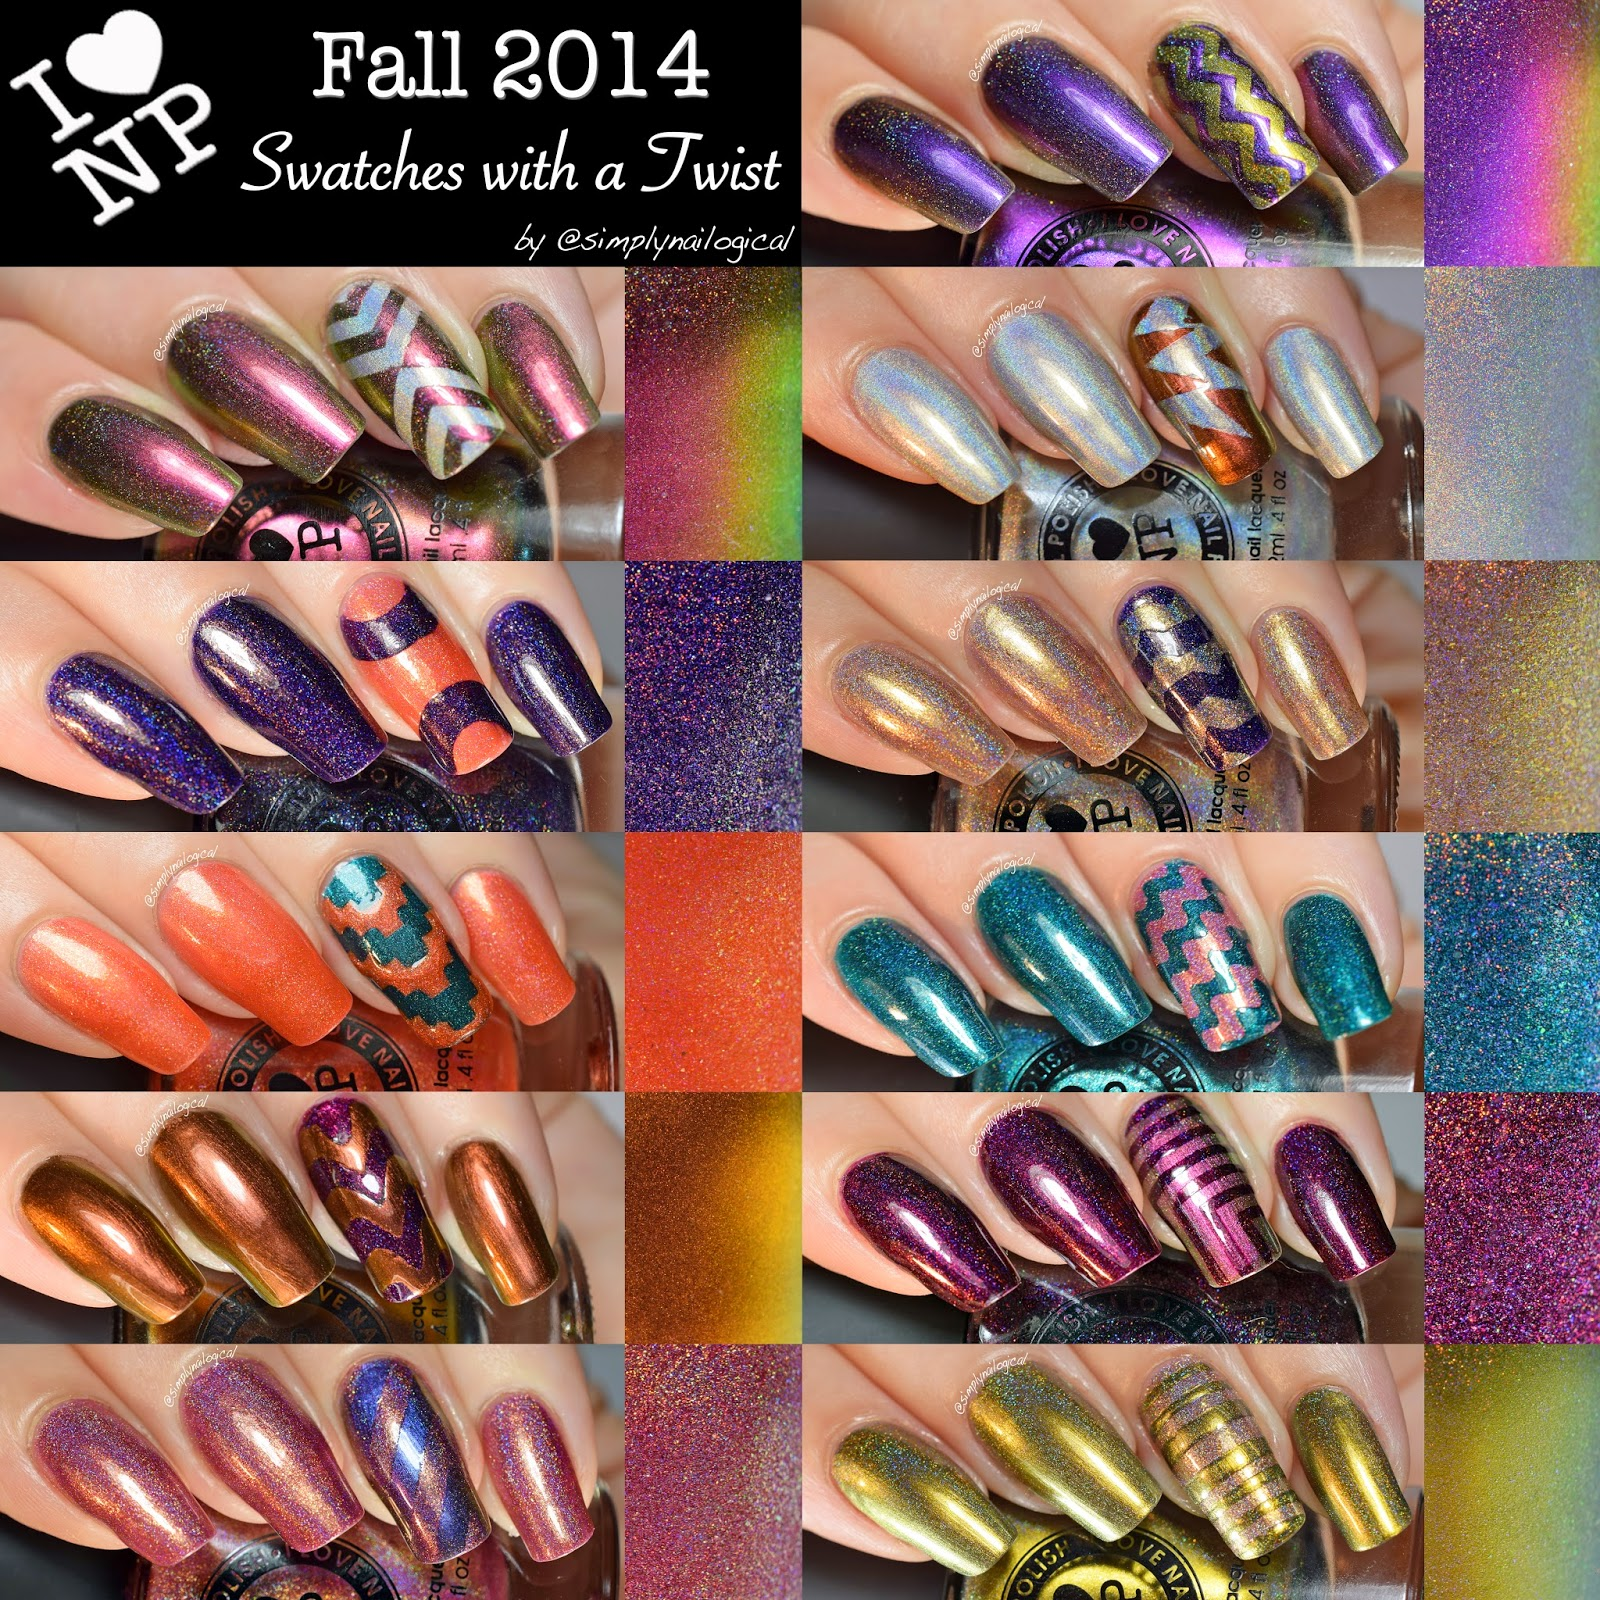 ILNP Fall 2014 collection swatches